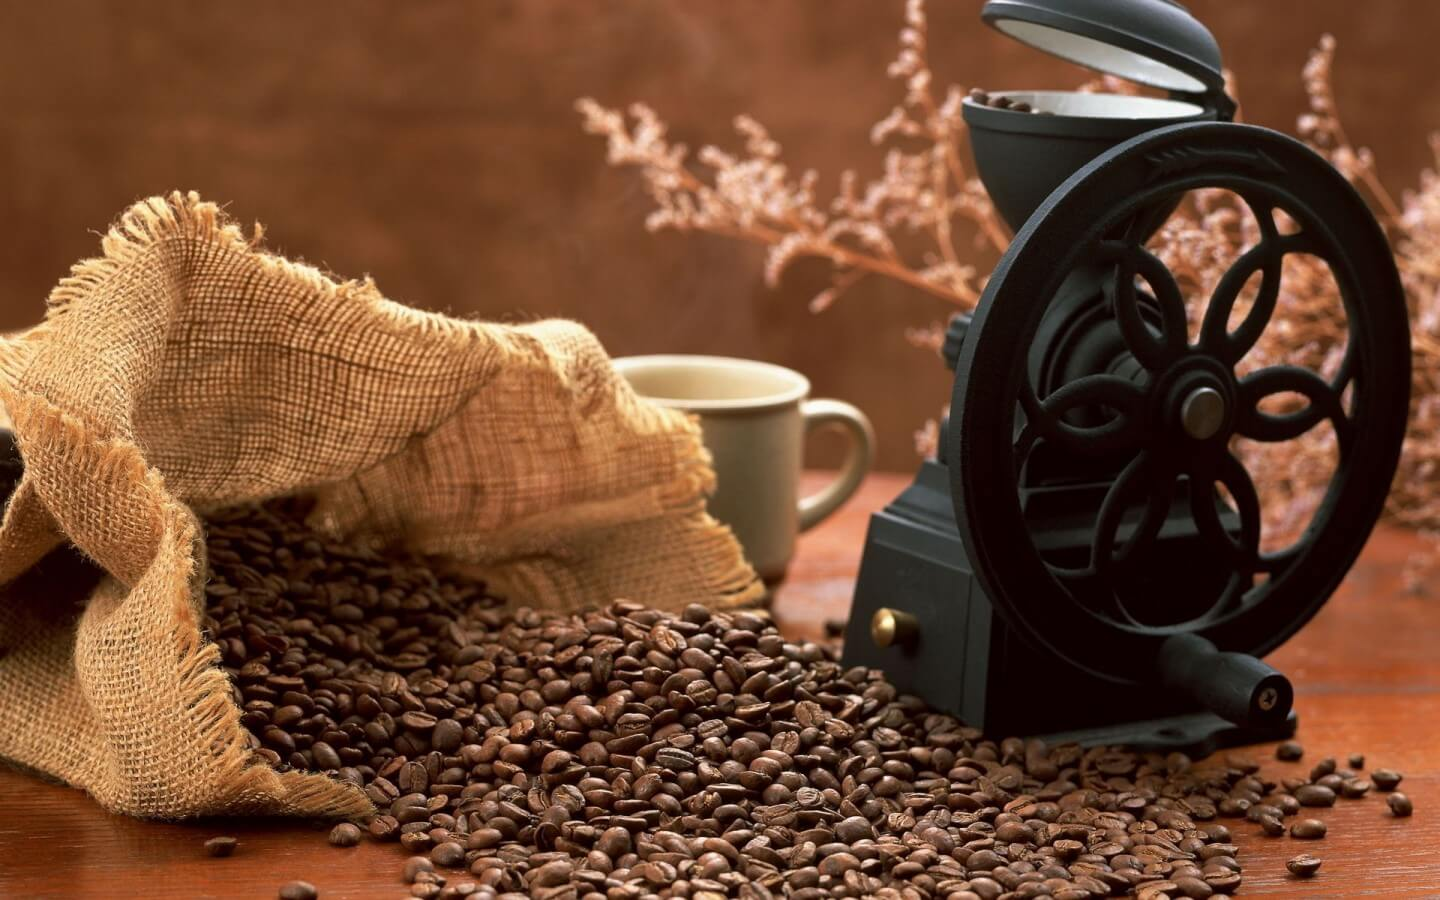 How to Choose the Best Coffee Grinder 2021